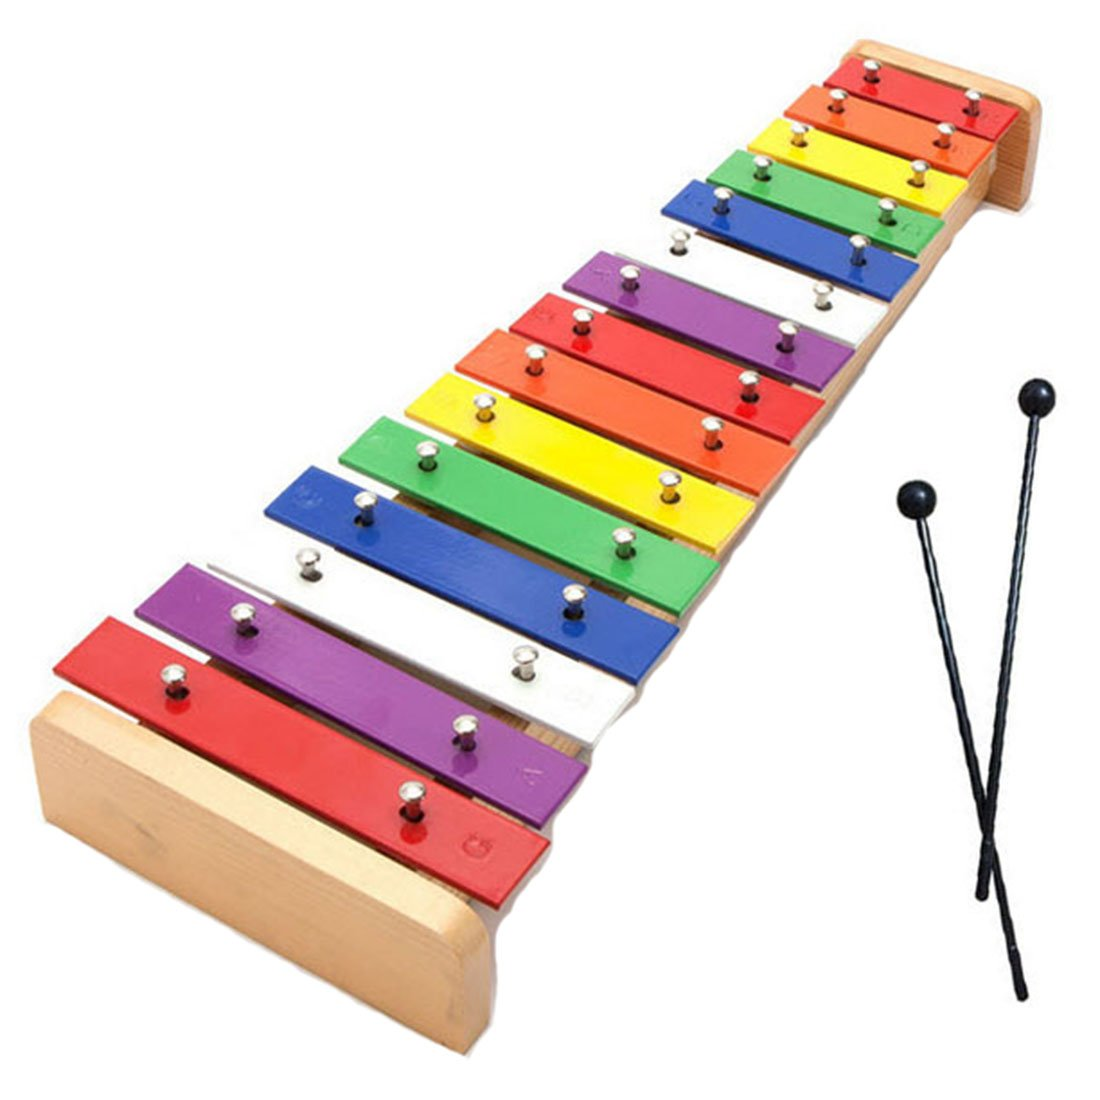 Dreams-Mall Wooden Xylophone Glockenspiel Musical Toy with 15 Tones for 3 Years Old and Above Baby Kids